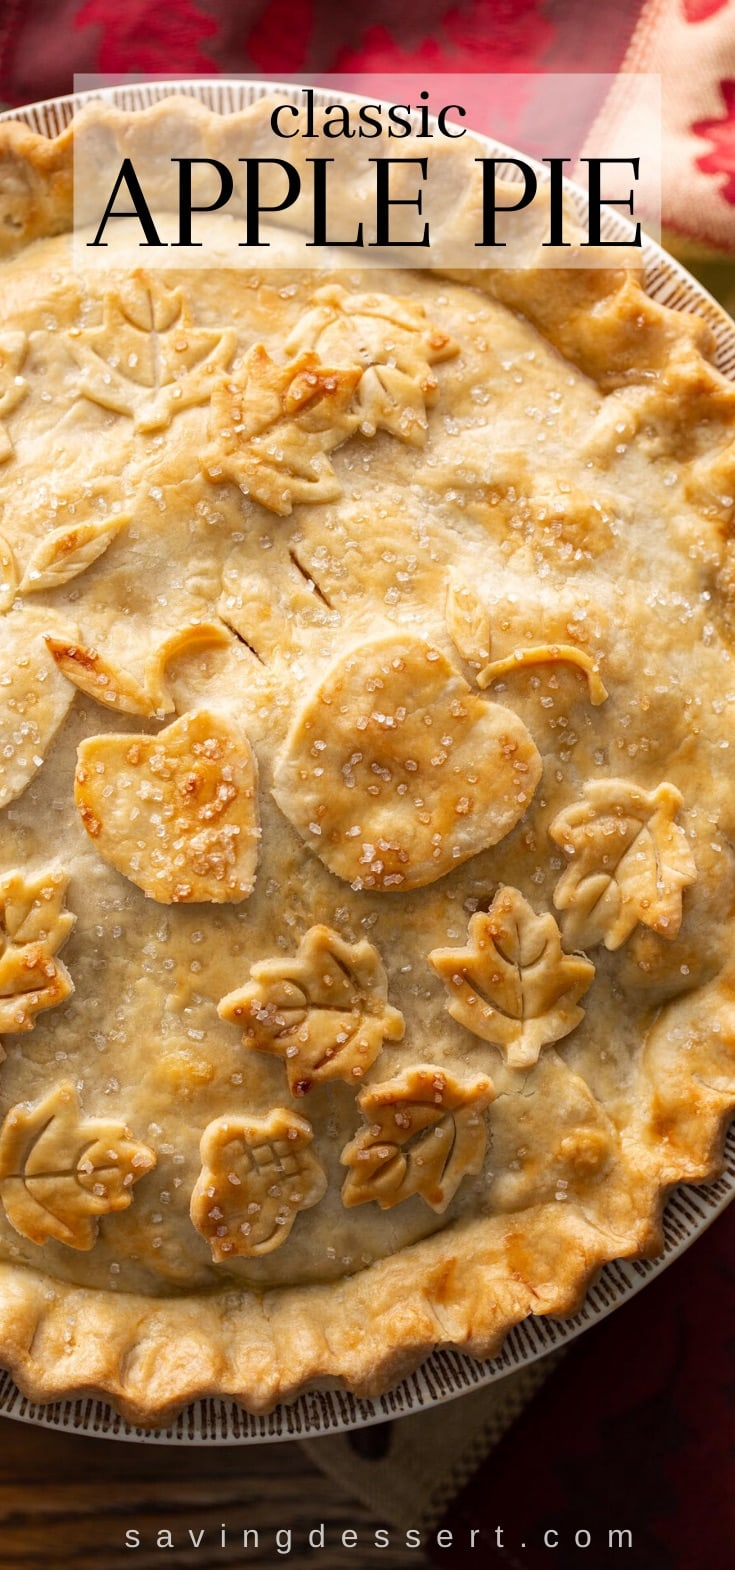 A close up of a classic double crust apple pie